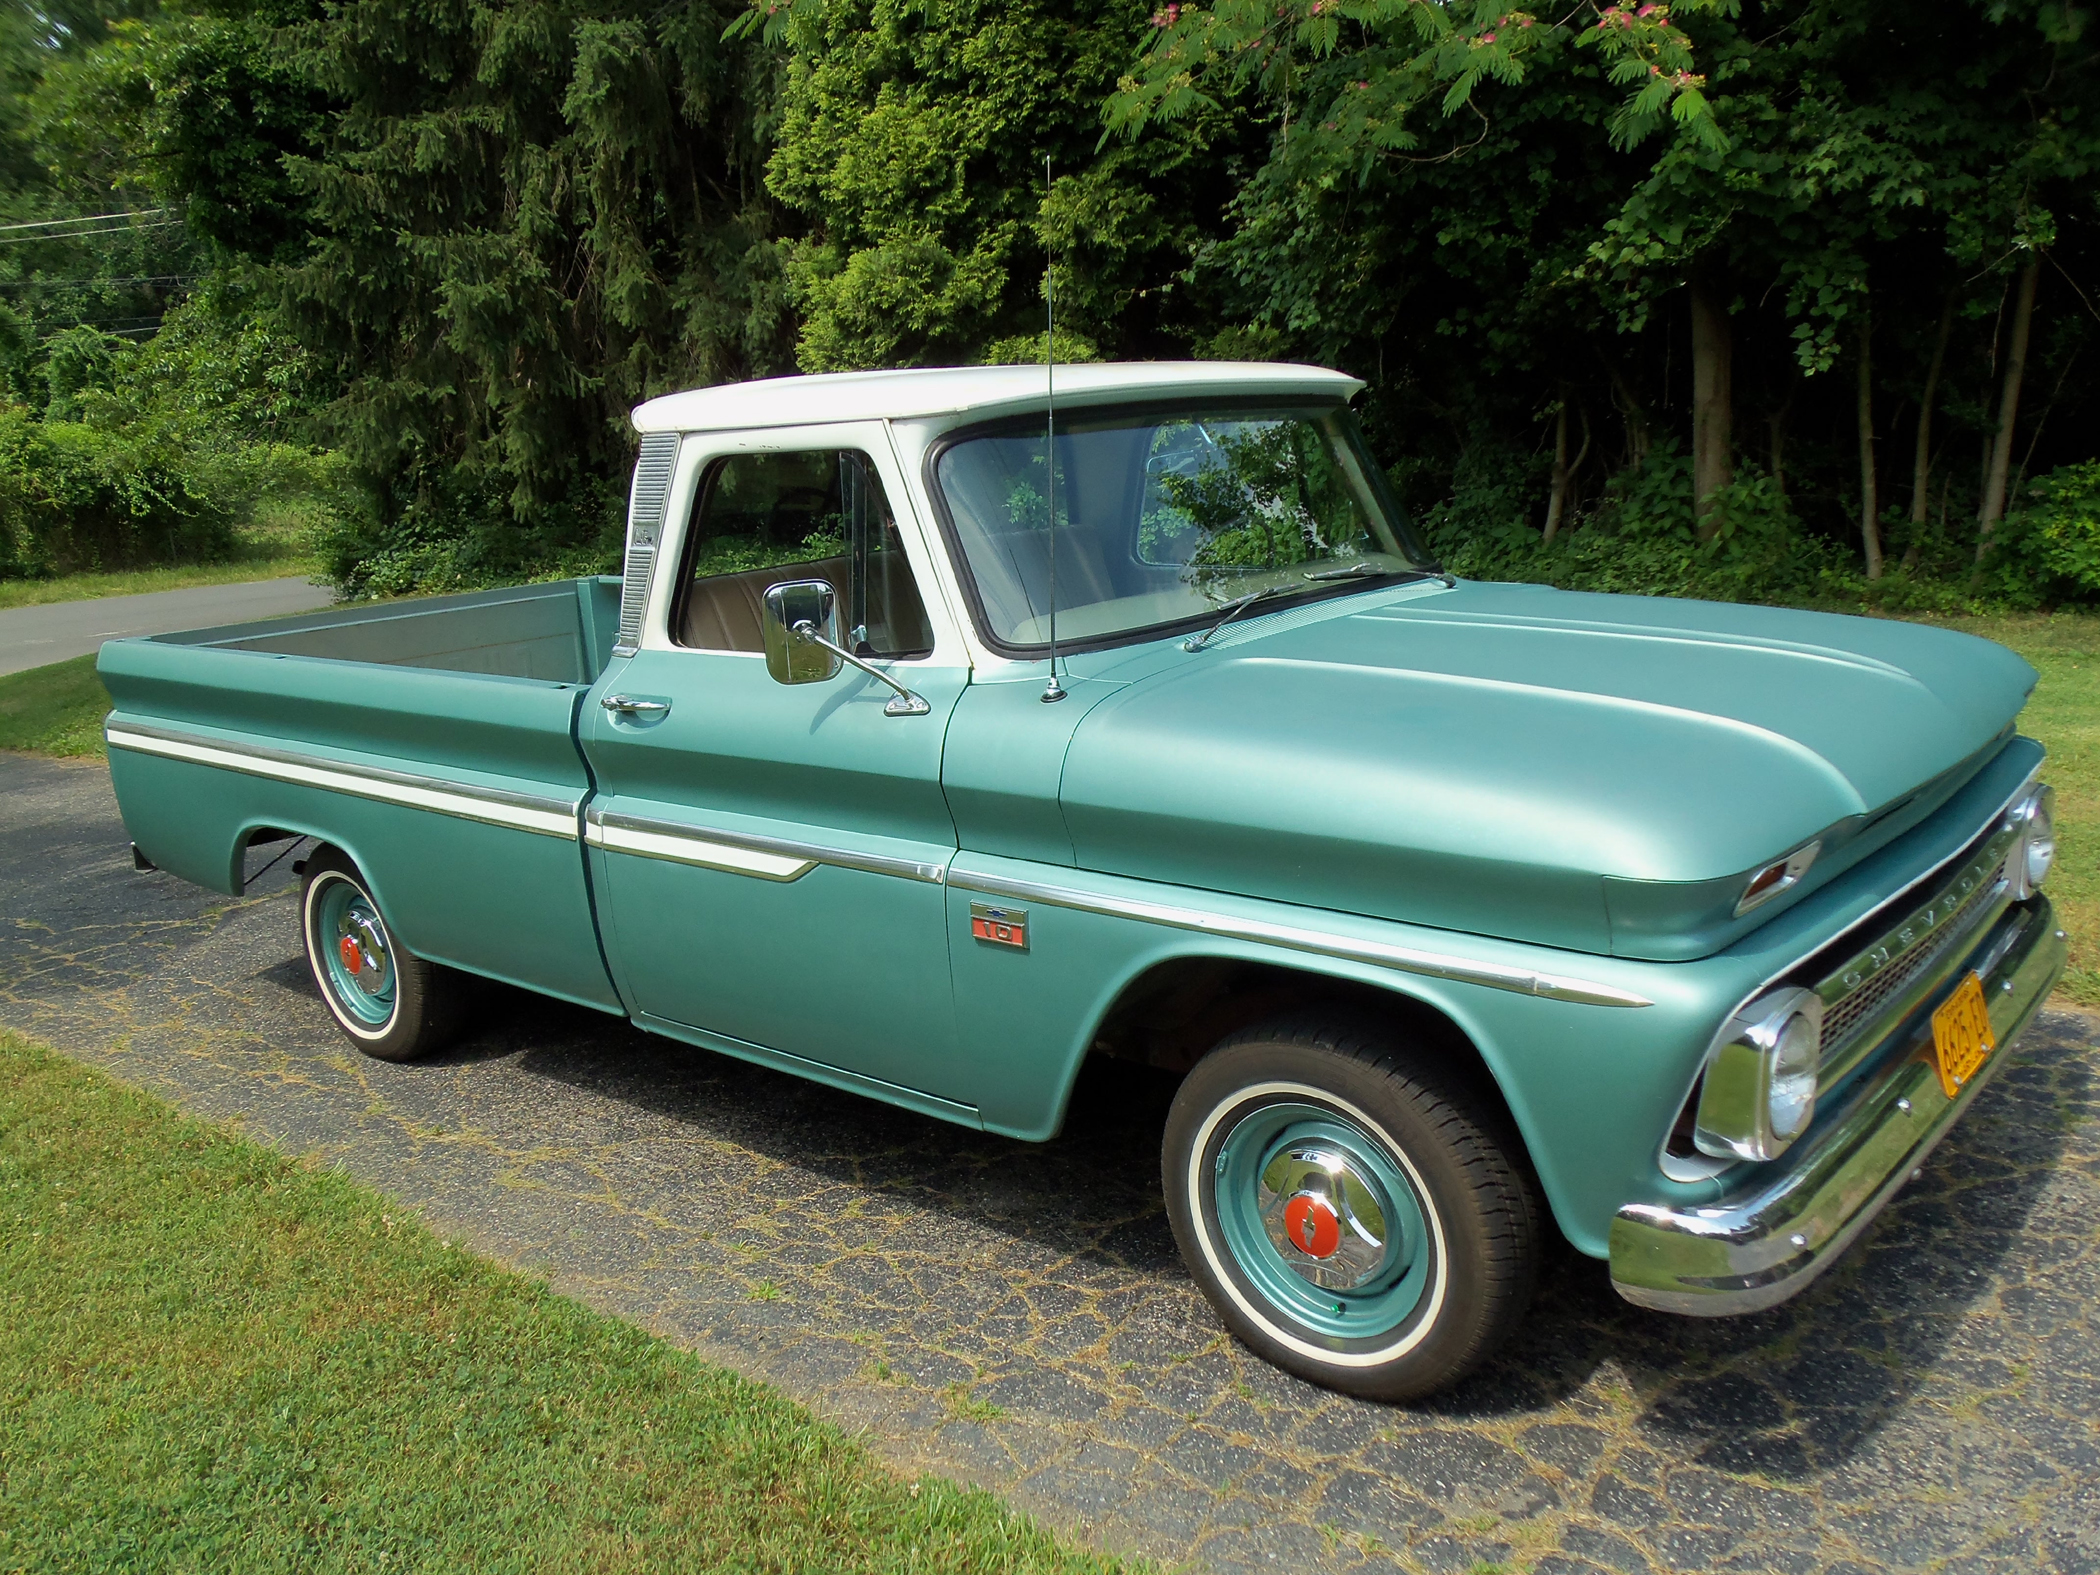 1966 Chevy C-10 Custom Pickup Truck in Pristine Shape - Classic ...